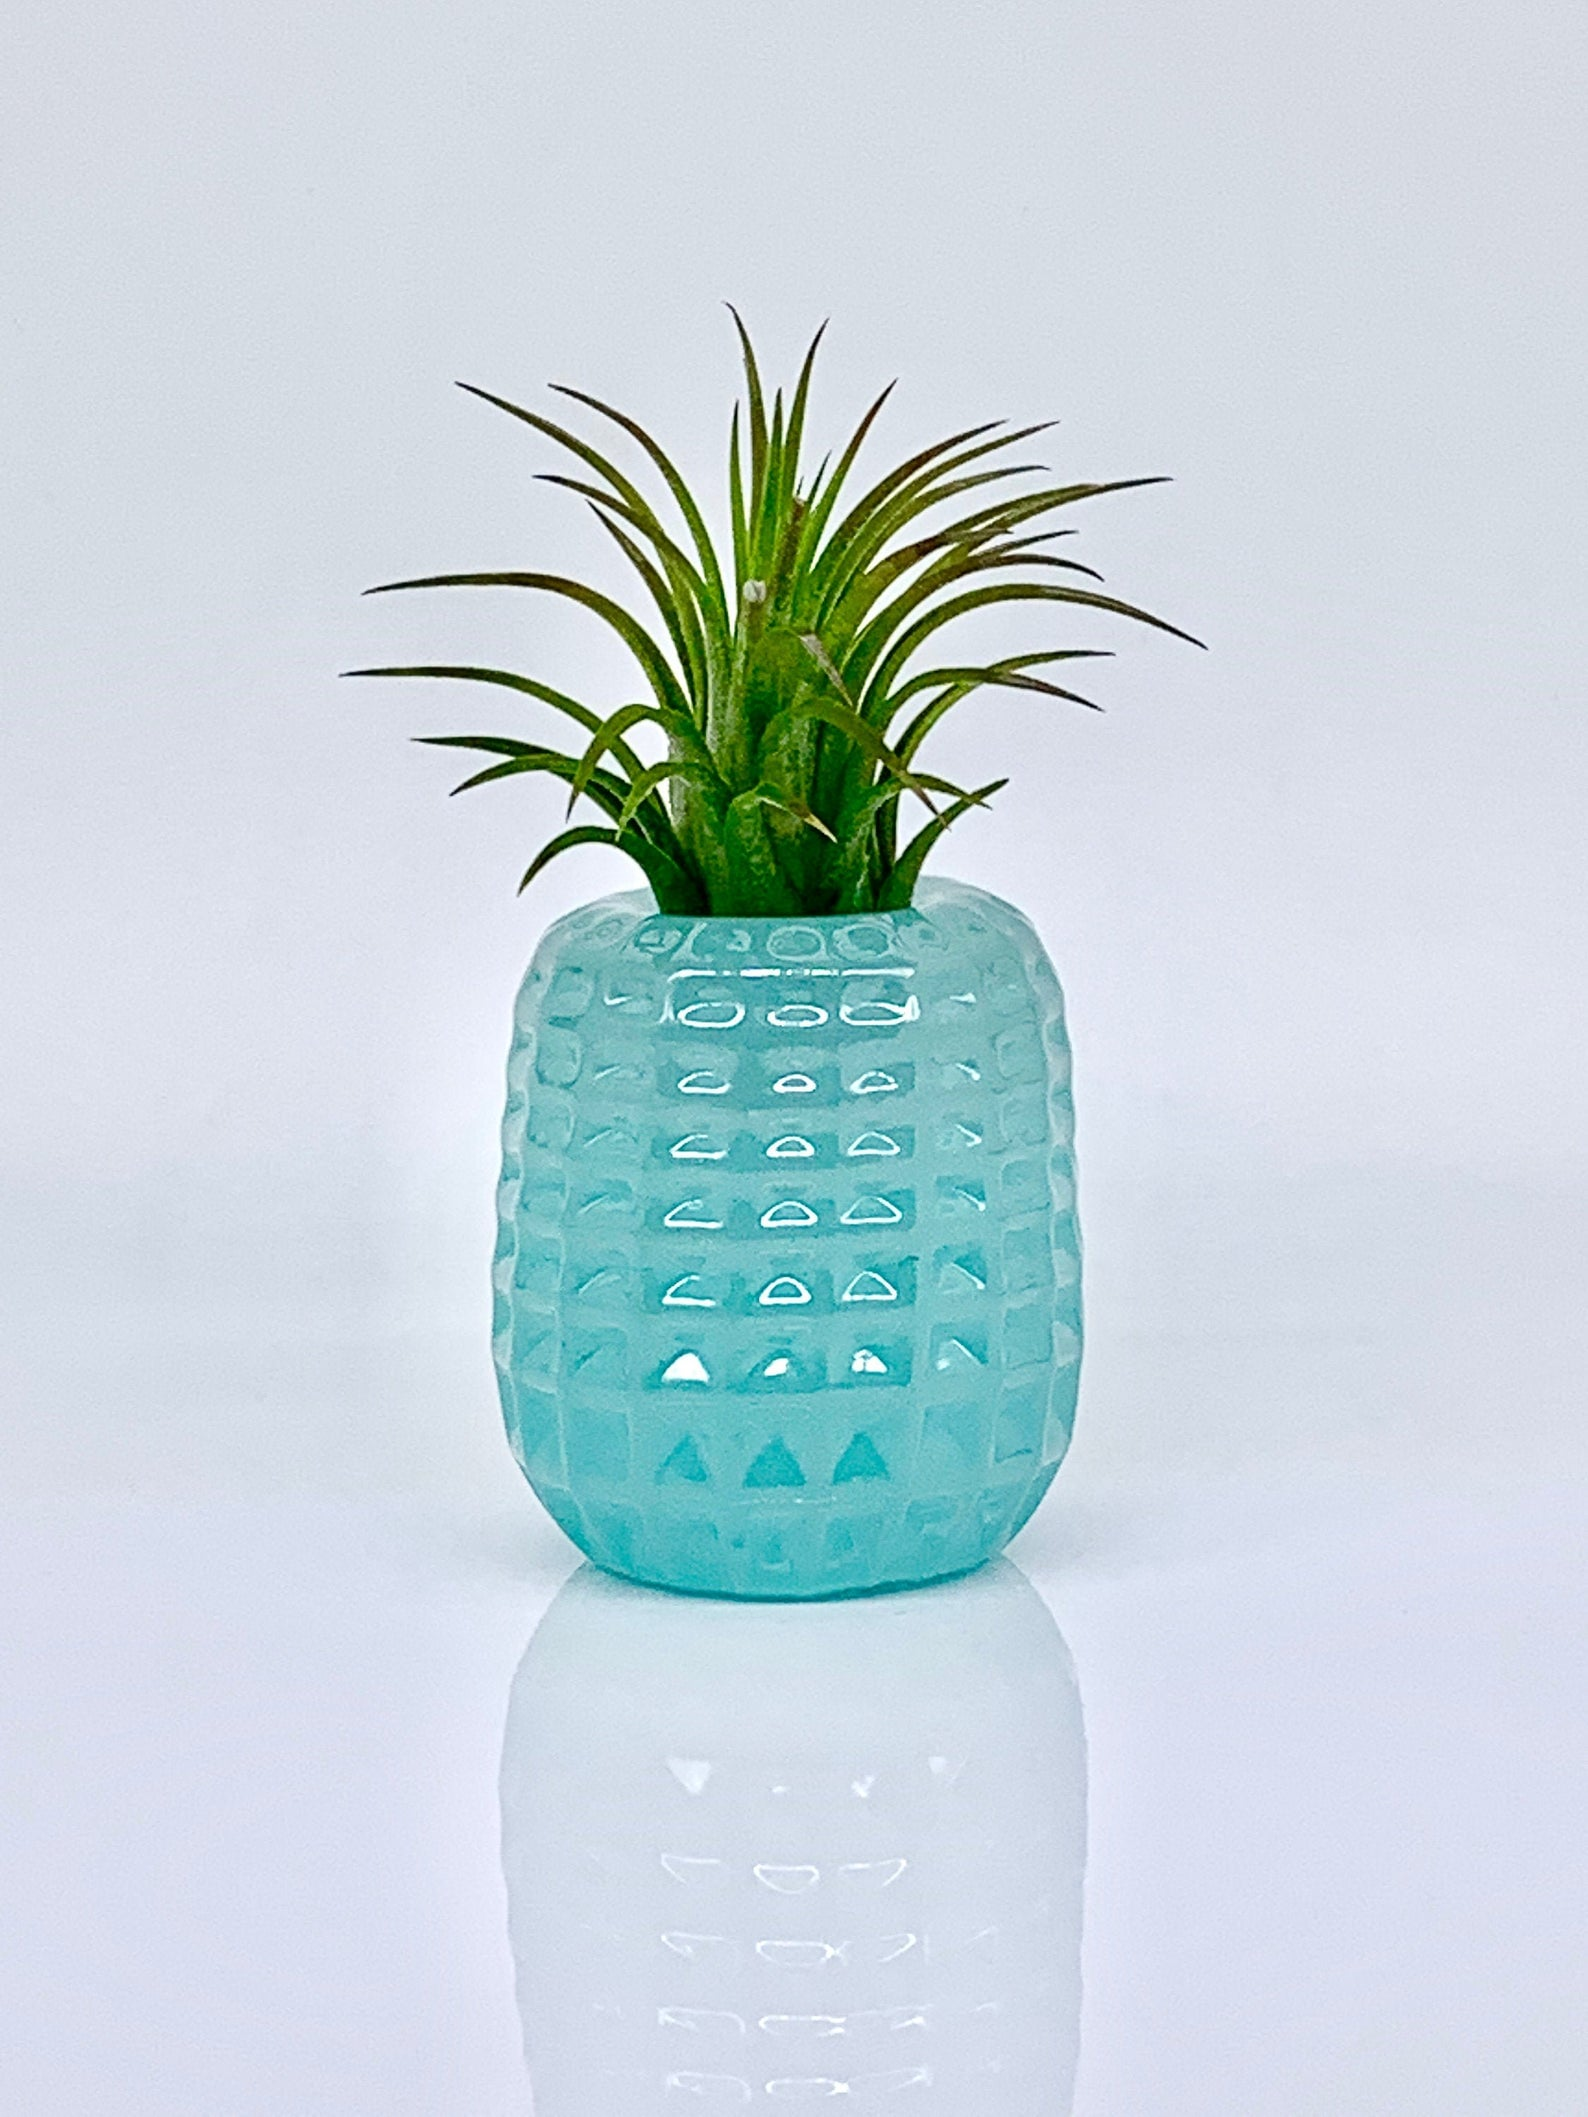 Plant Lover Gift Teal Pineapple PREMADE Pineapple Lover Gift Turquoise Pineapple Air Plant Holder